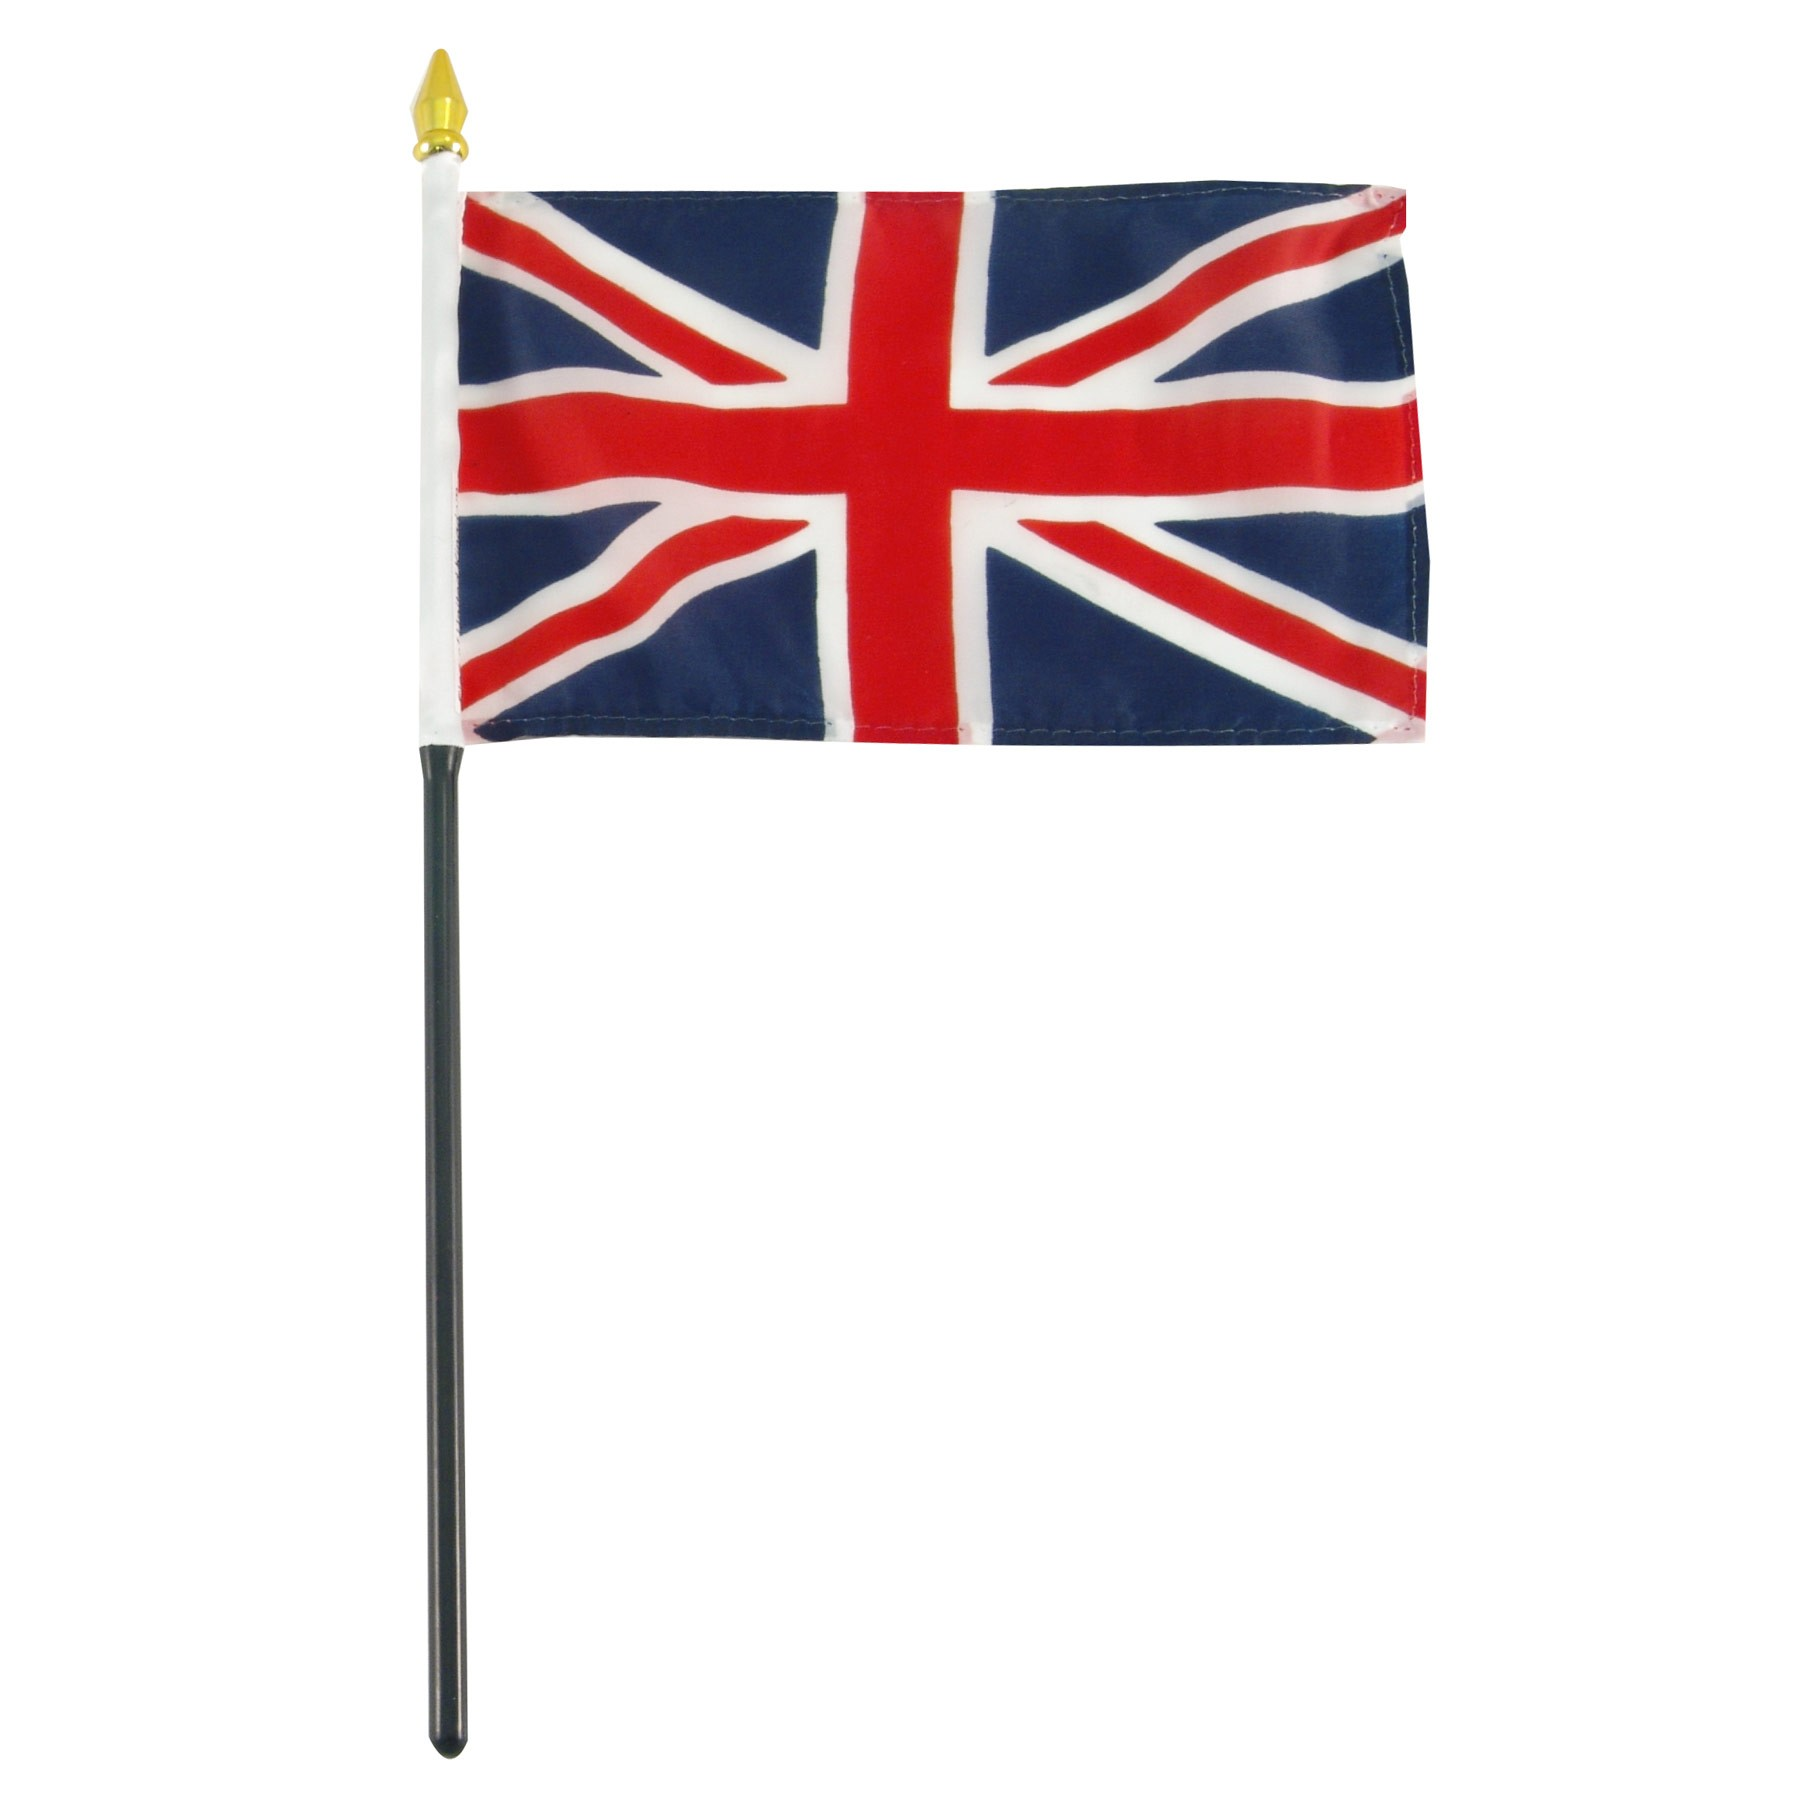 20 Images Of British Flag Free Cliparts That You Can Download To You